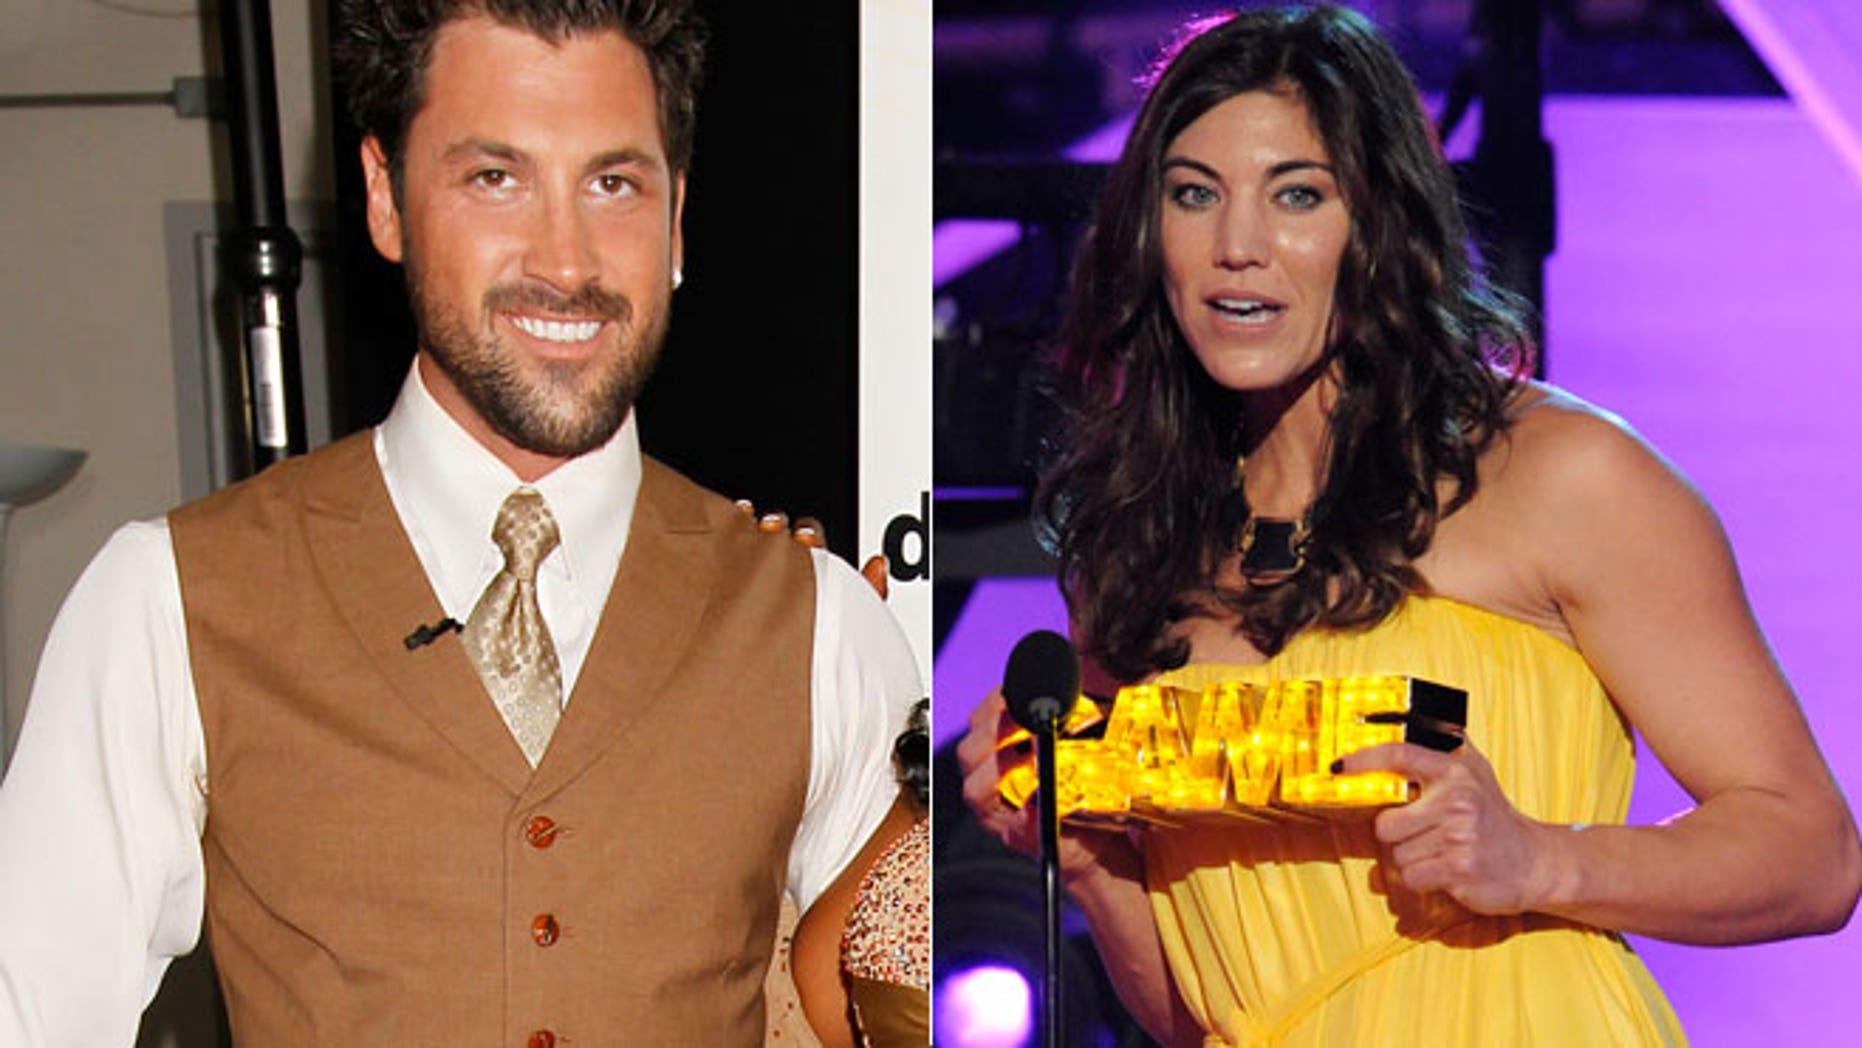 Hope Solo is accusing her former 'DWTS' partner Maksim Chmerkovskiy of being aggressive with her during rehearsals.